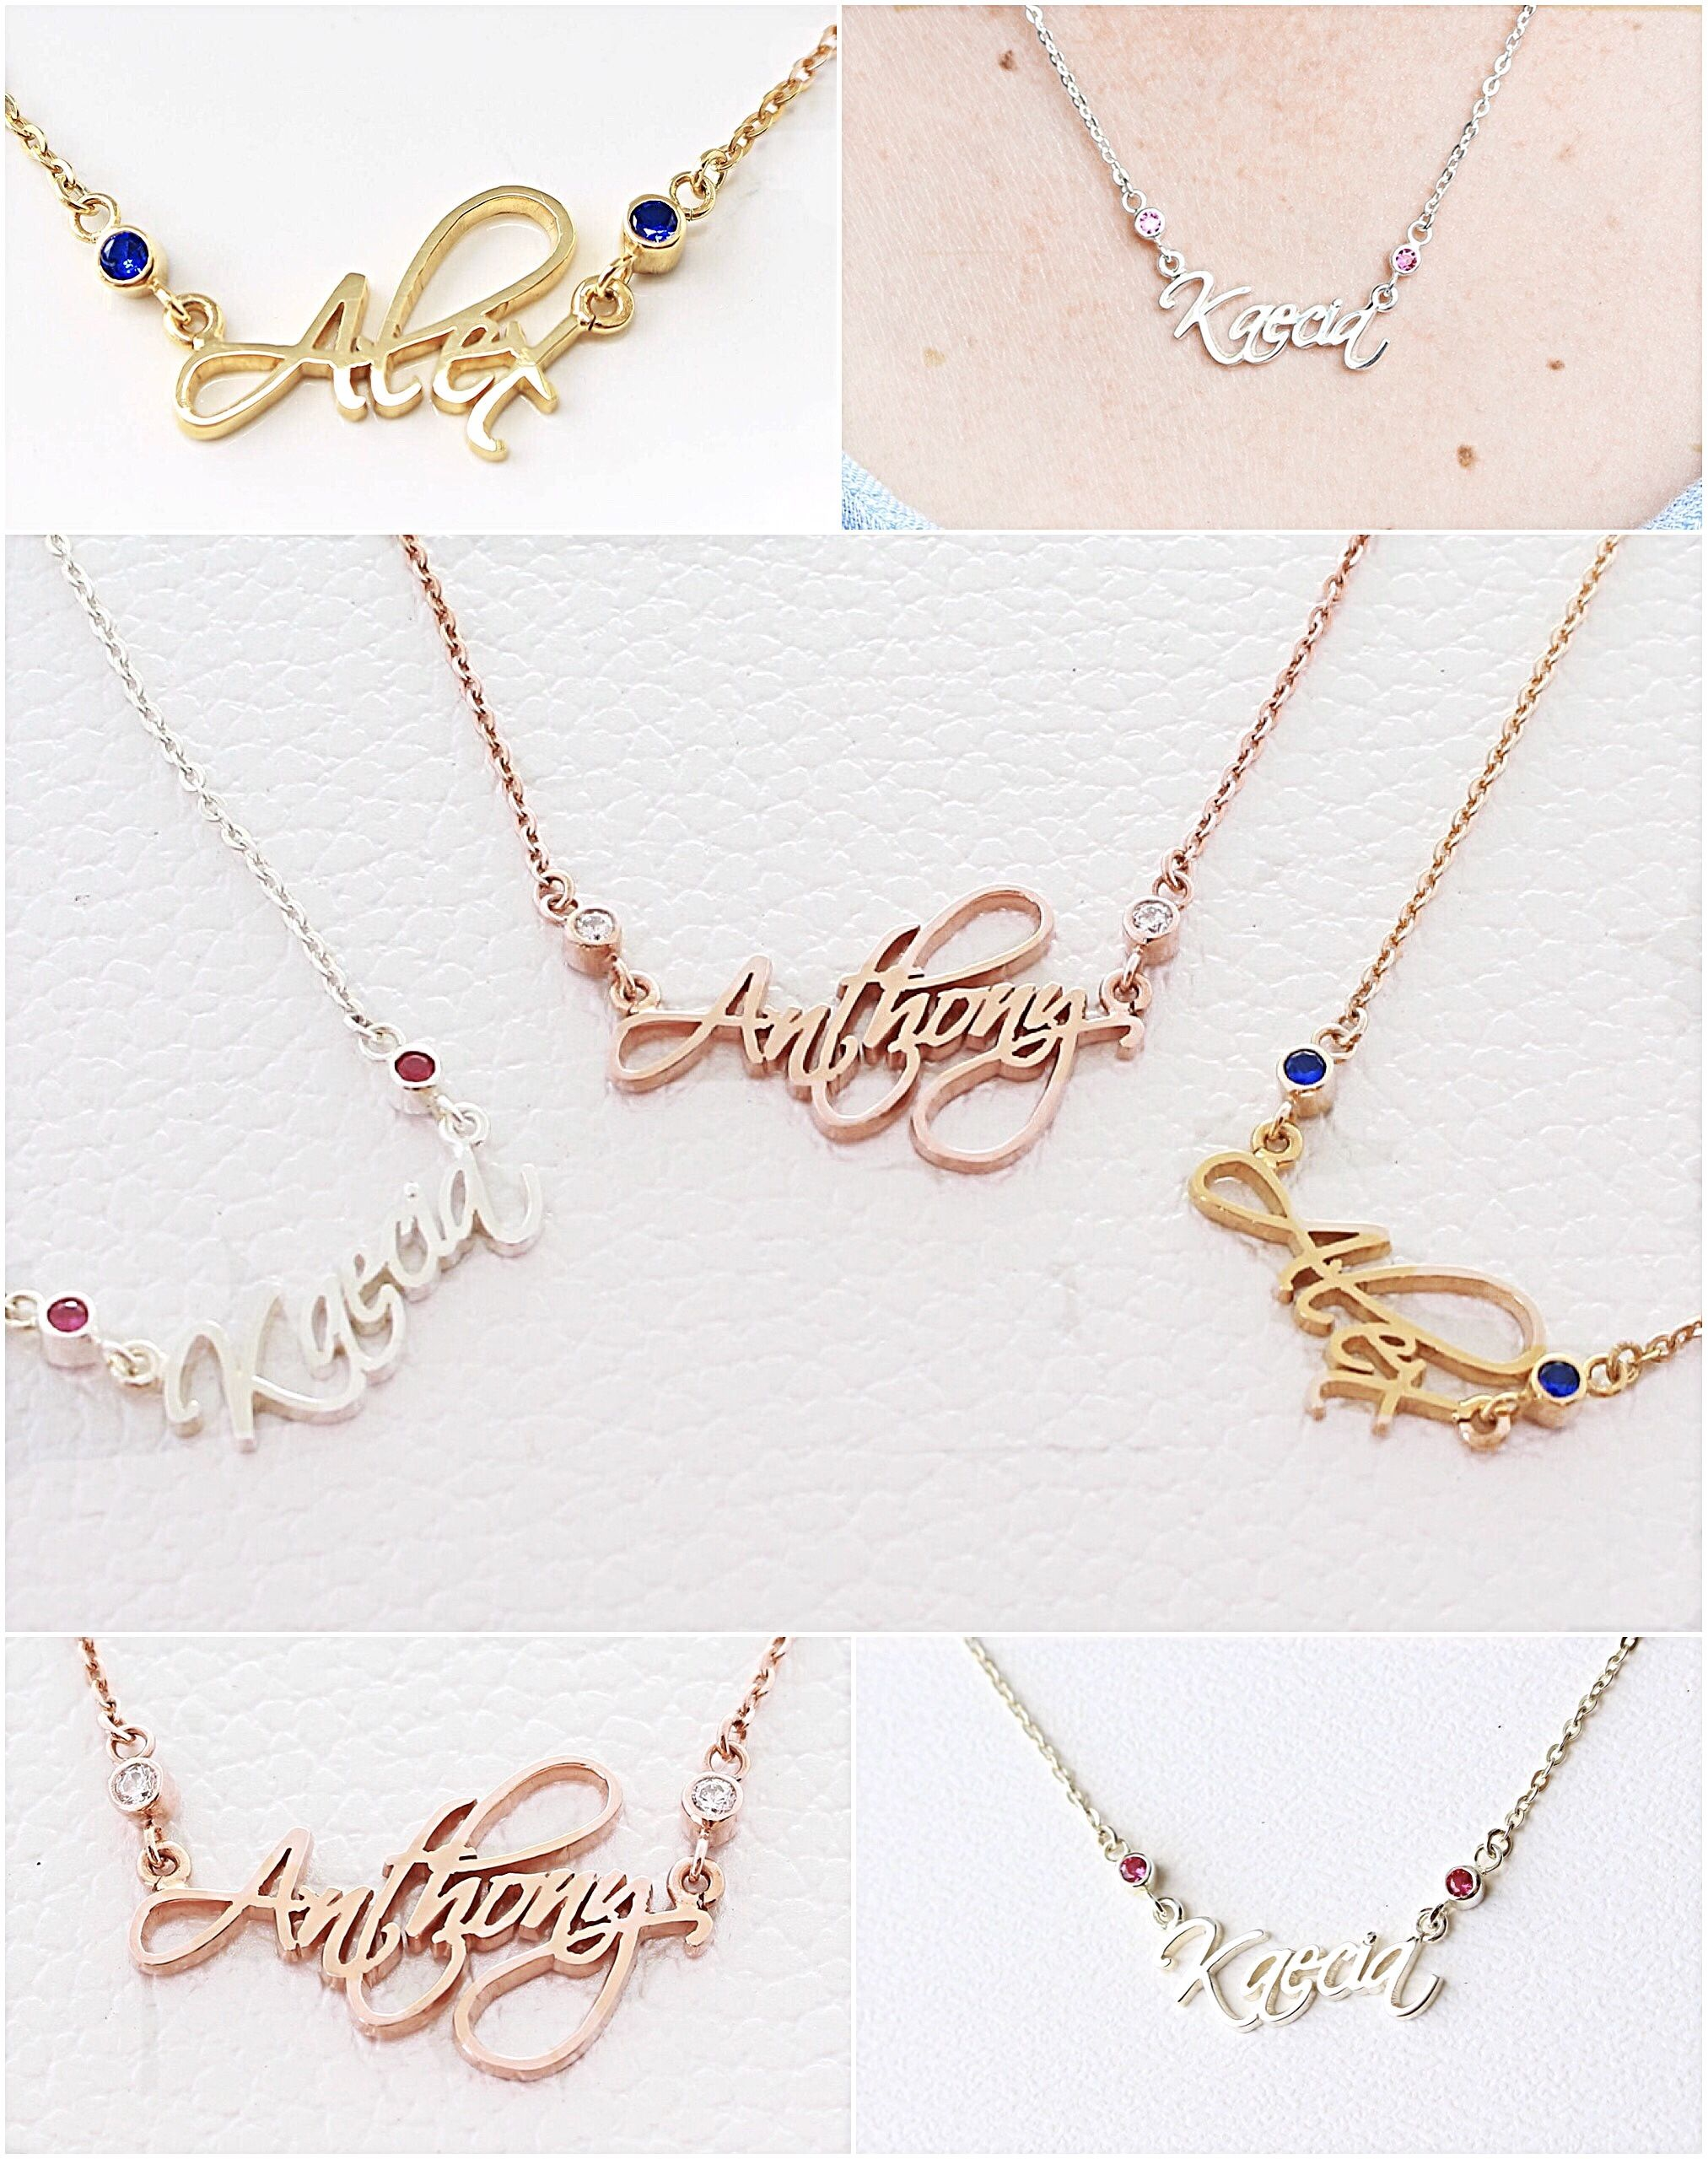 Custom name necklace with birthstones in sterling silver or yellow